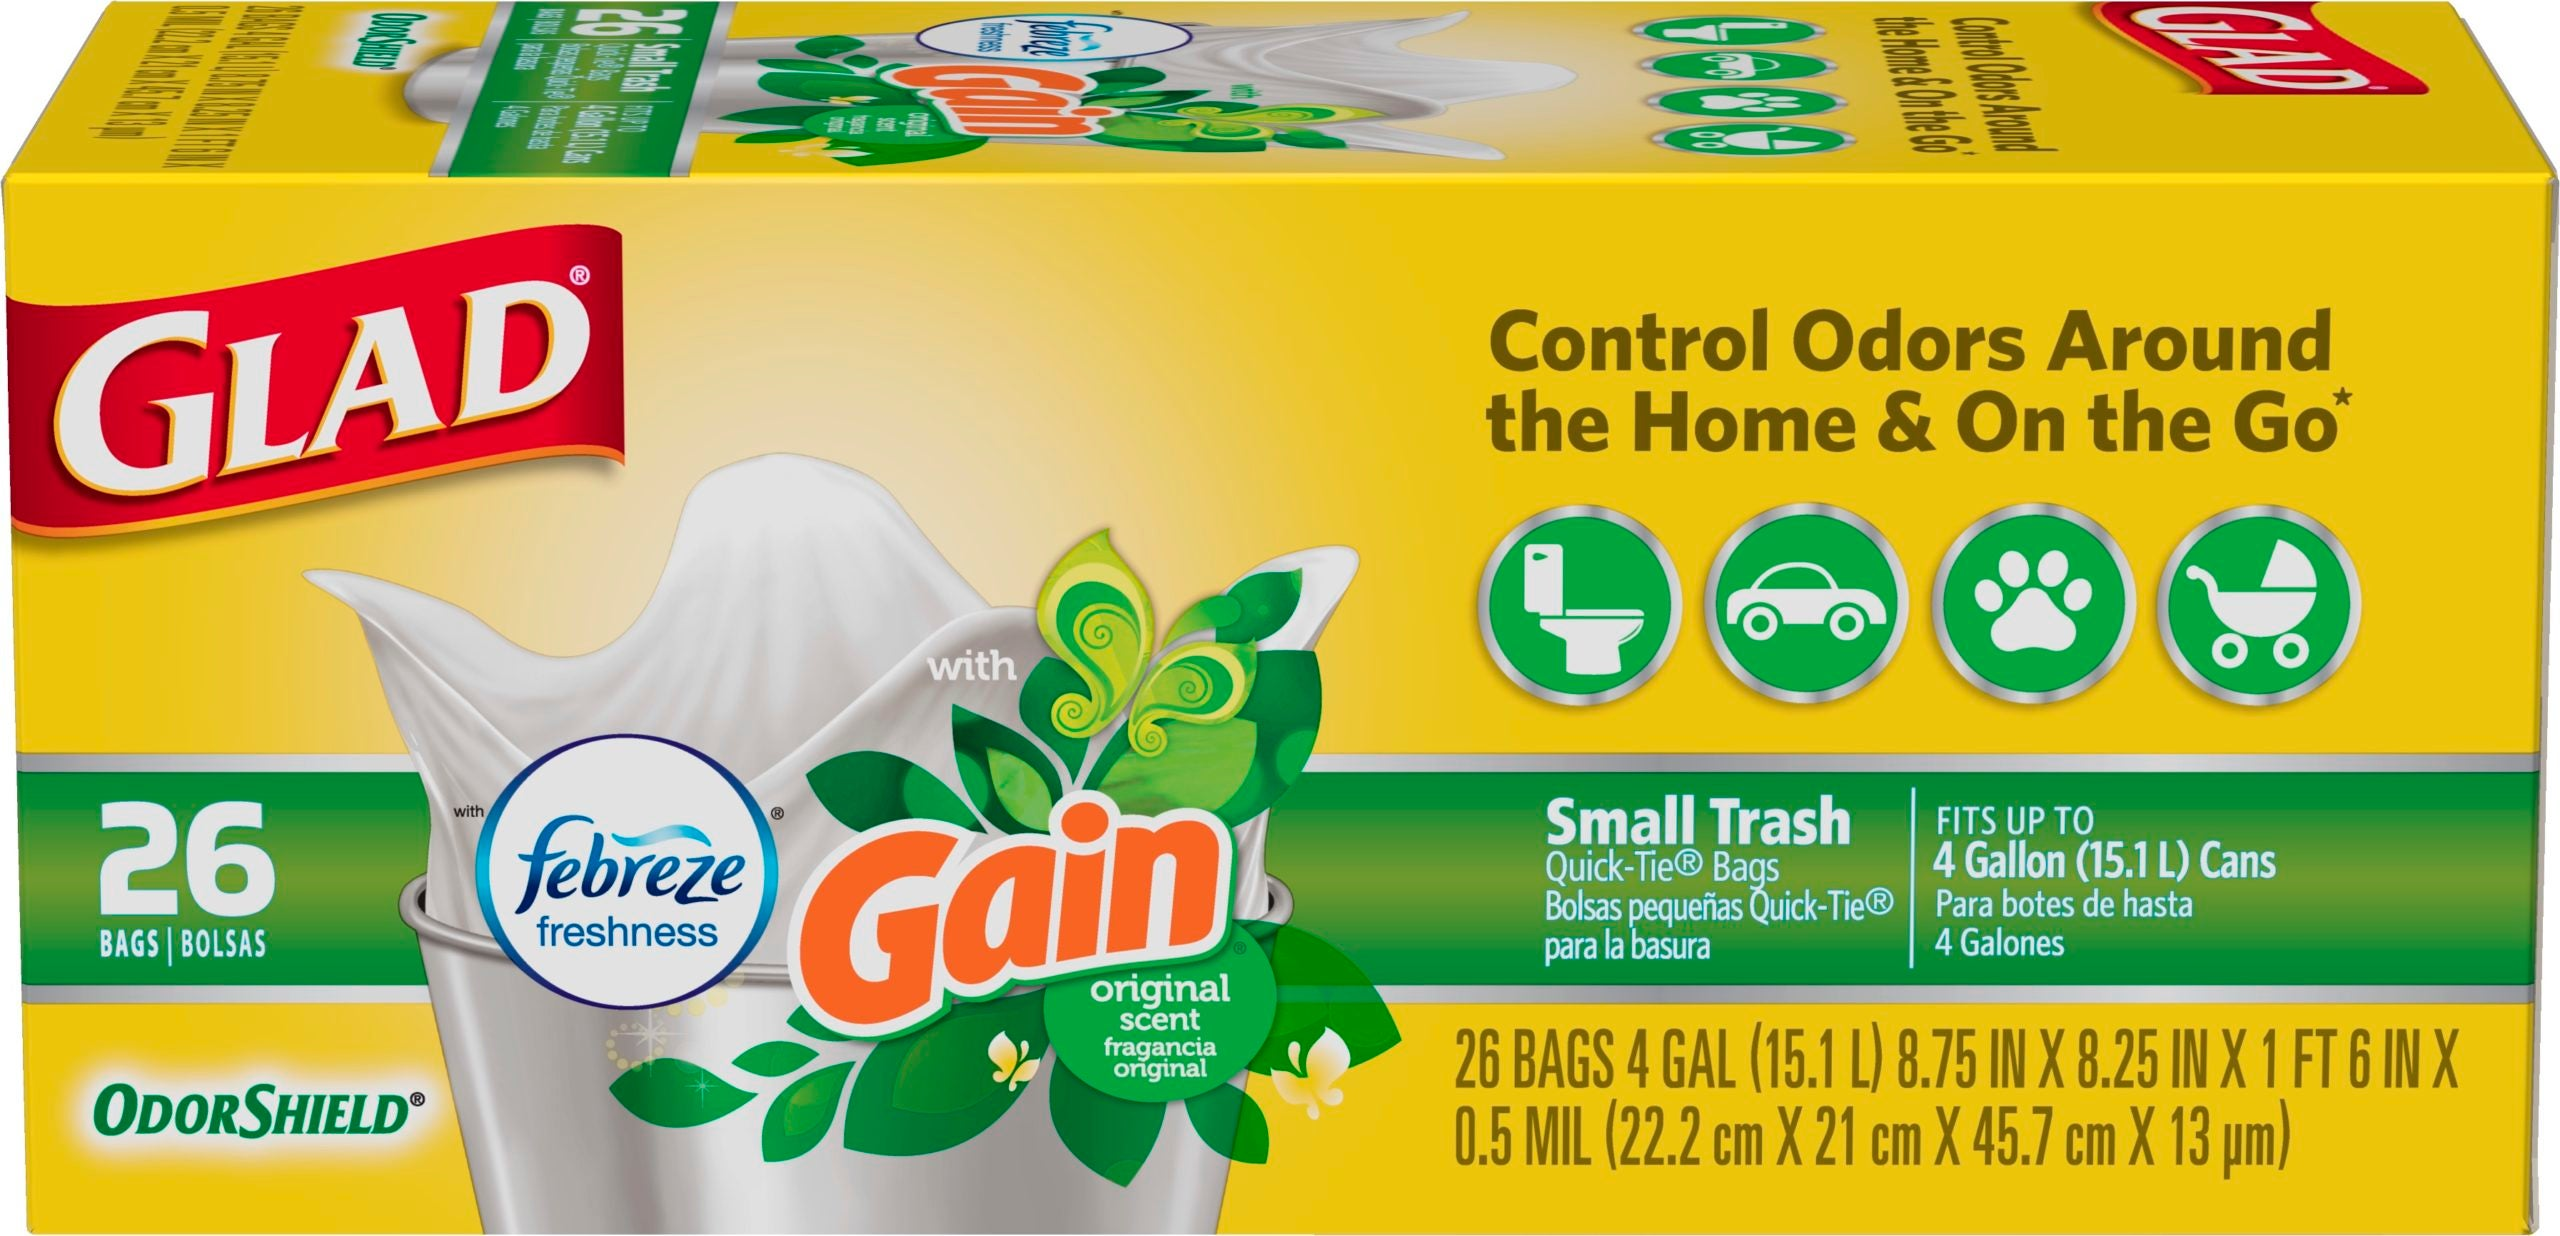 Small Garbage Scented Bags Original Gain Scent